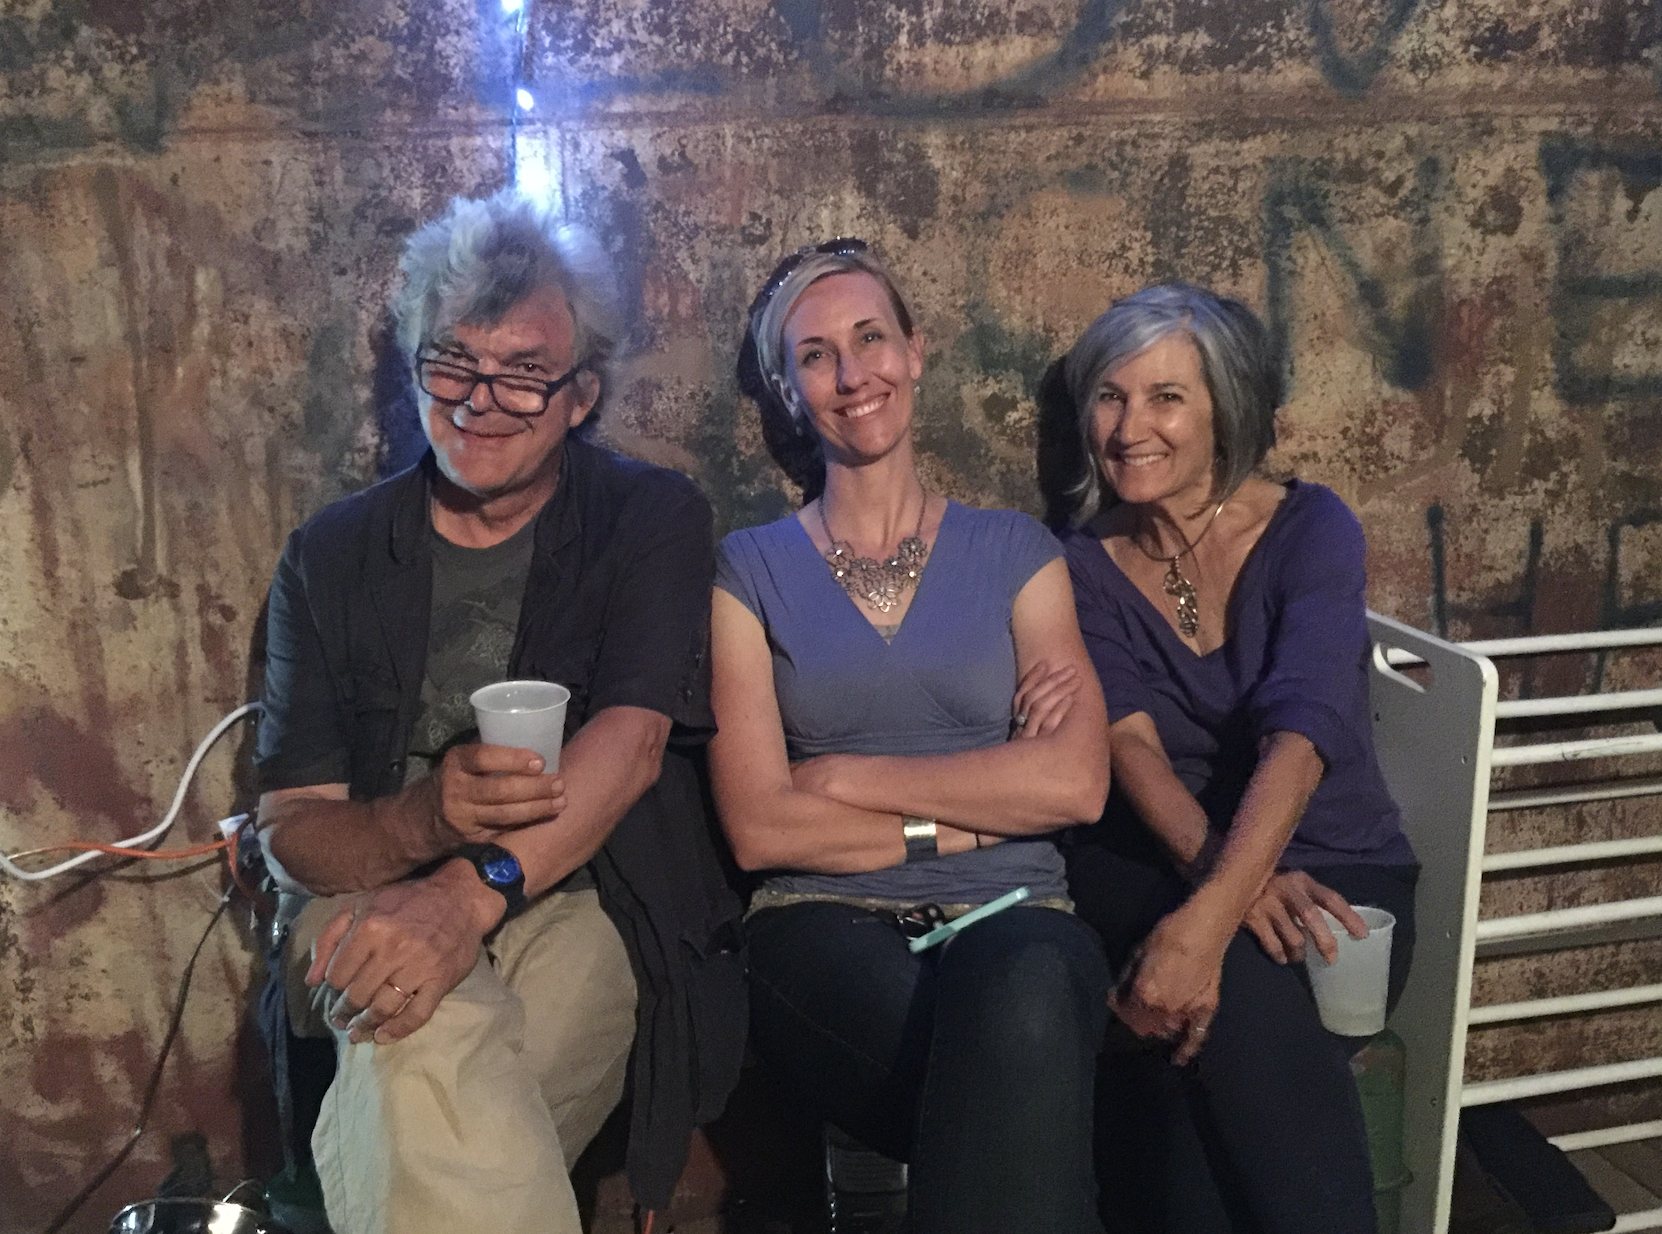 After an exhausting and thrilling Summer Solstice event, Founder Bruce, Rangely Writer Heather, and Lois get to sit down.